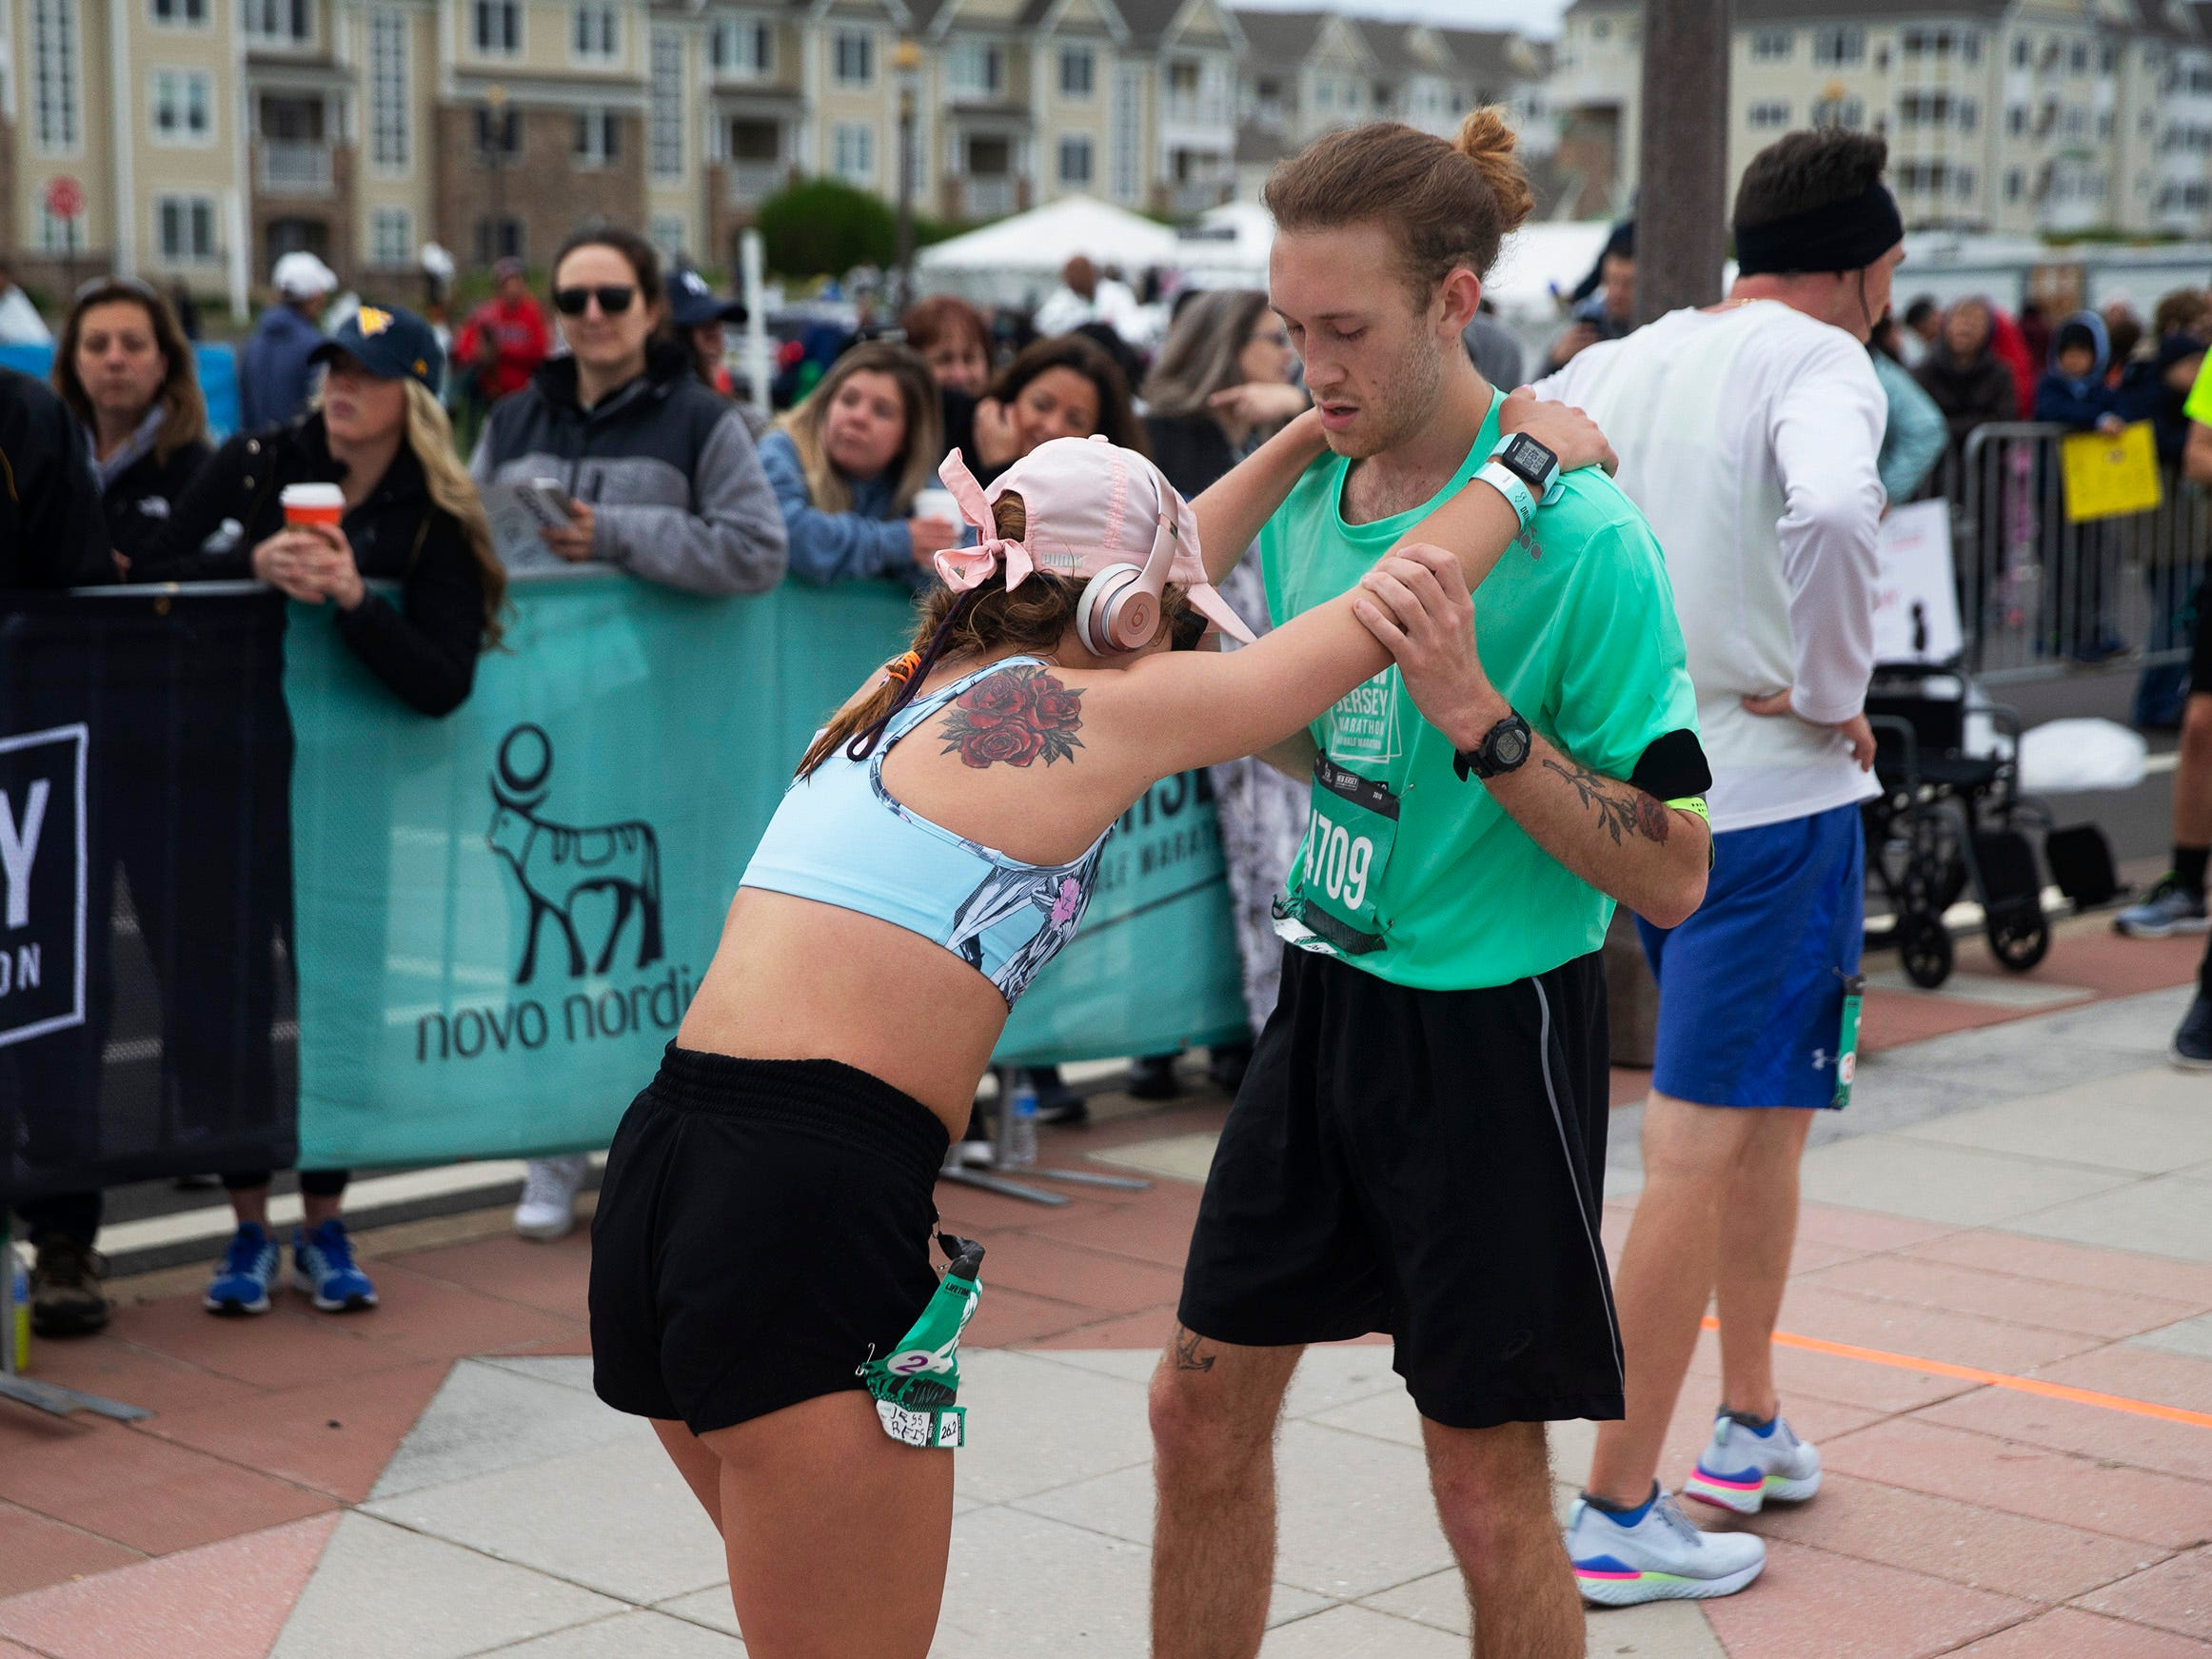 A tired runner is helped down the chute after crossing finish line in the half marathon. 2019 Novo Nordisk New Jersey Marathon and Half Marathon which started at Monmouth Park in Oceanport and ended at Ocean Promenade in Long Branch.